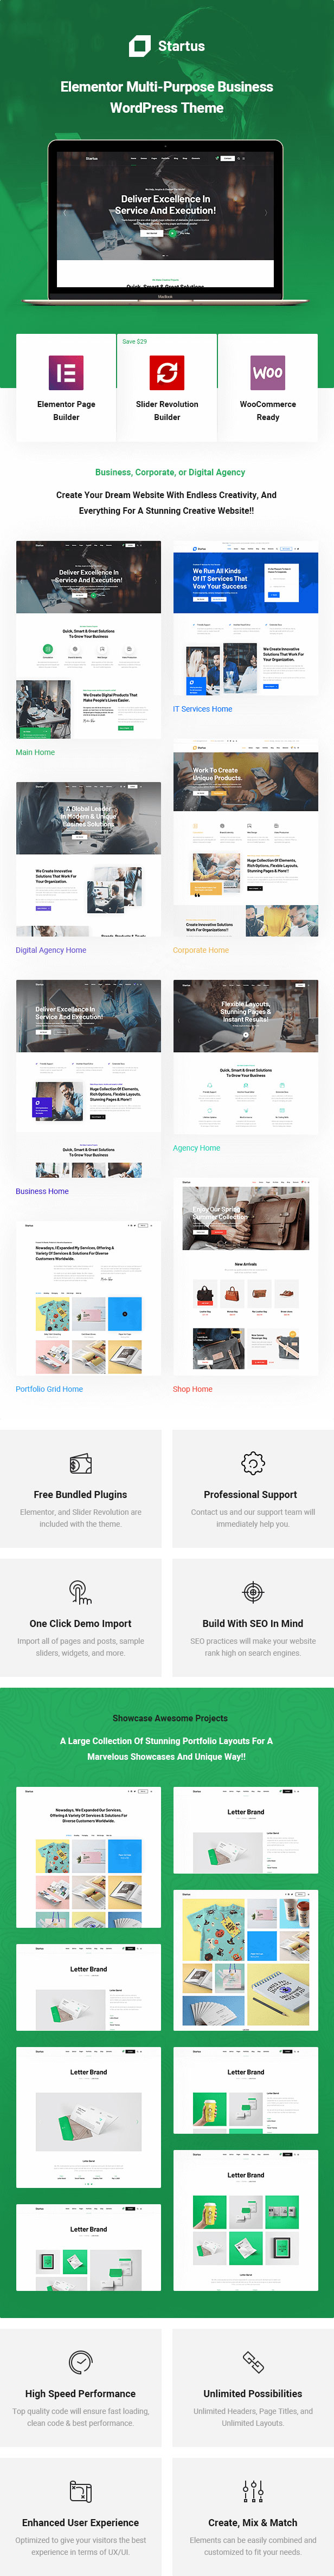 Startus - Multipurpose Business WordPress Theme - 1